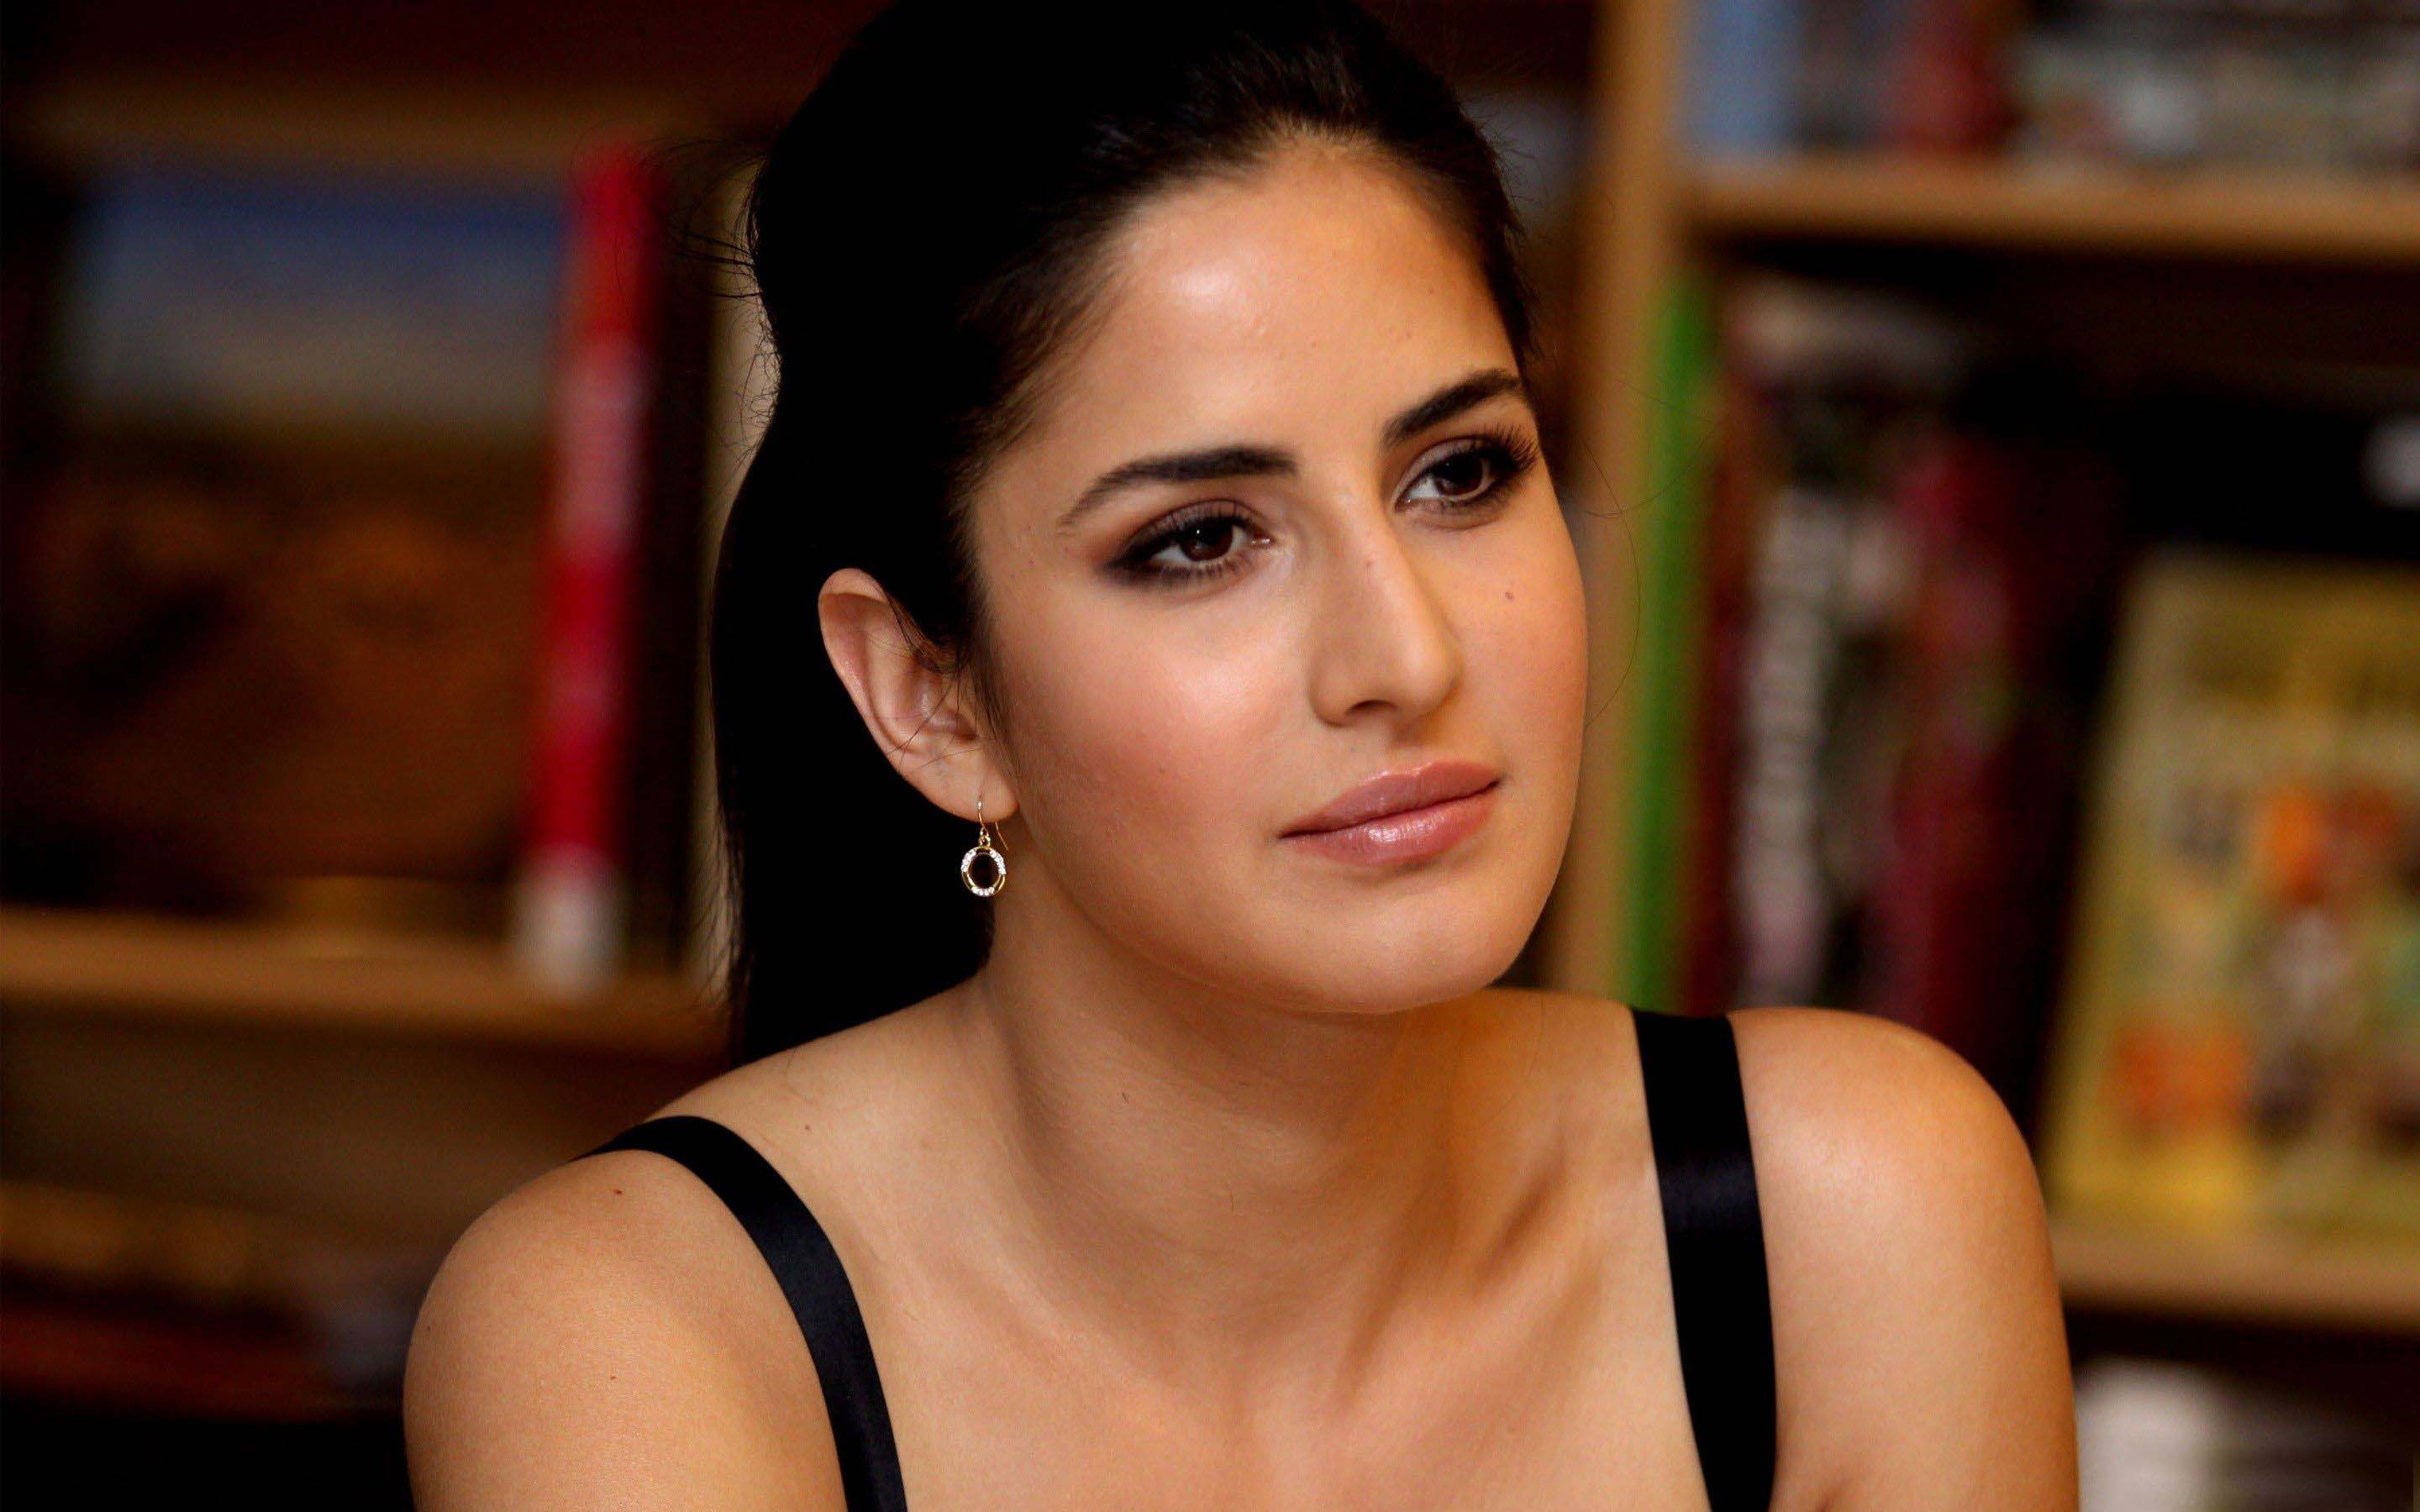 Site theme katrina kaif xxx photos hd